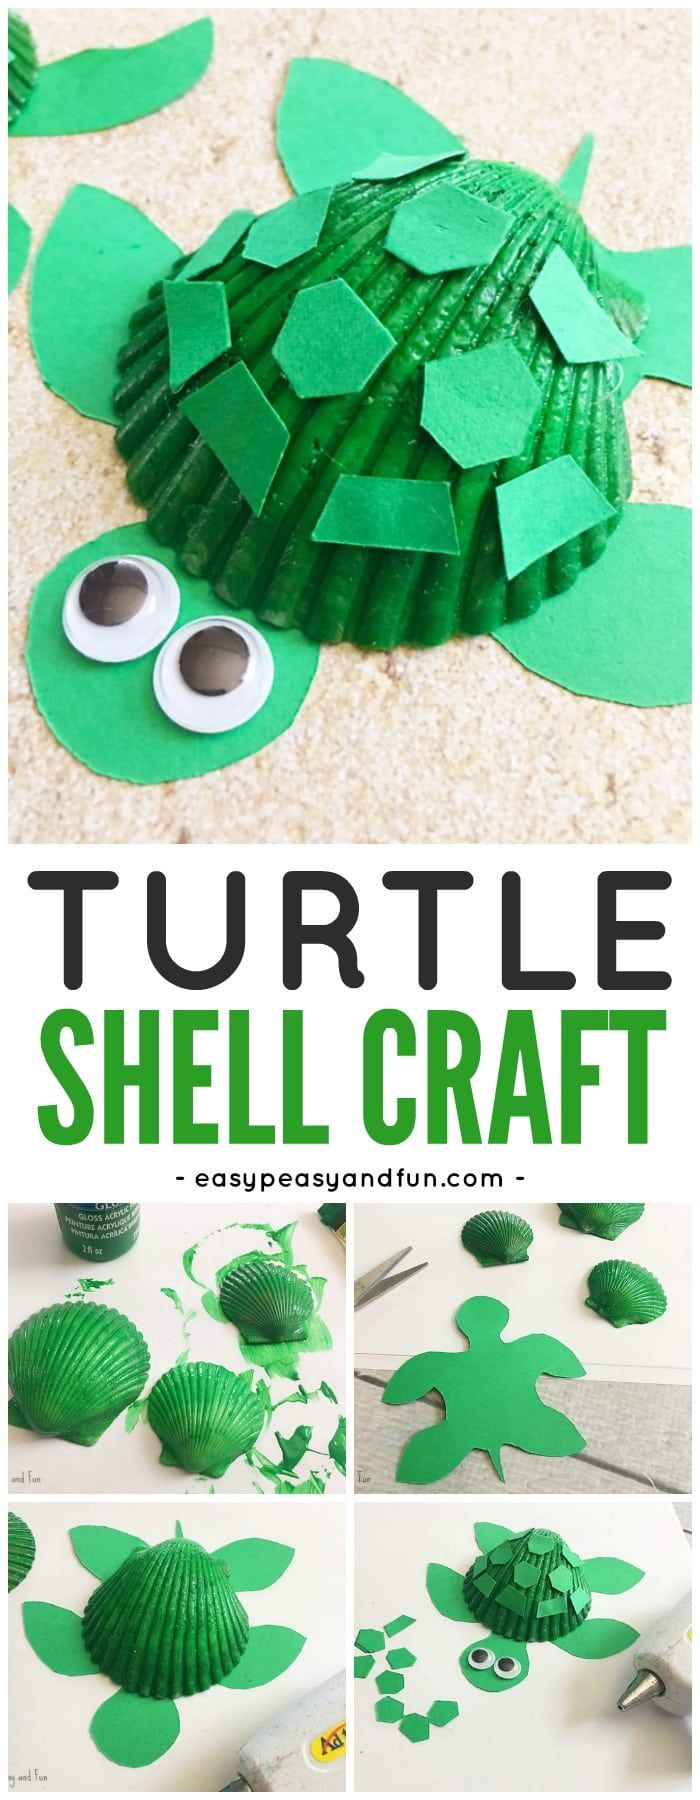 Adorable Seashell Turtle Craft for Kids from @easypeasyandfun They have so many precious arts and crafts ideas that your children will adore-colors, textures, animals. They are all easy to do, and they encourage creativity-they will keep your little ones busy this summer, and if you are a preschool-K teacher, you'll love these too!